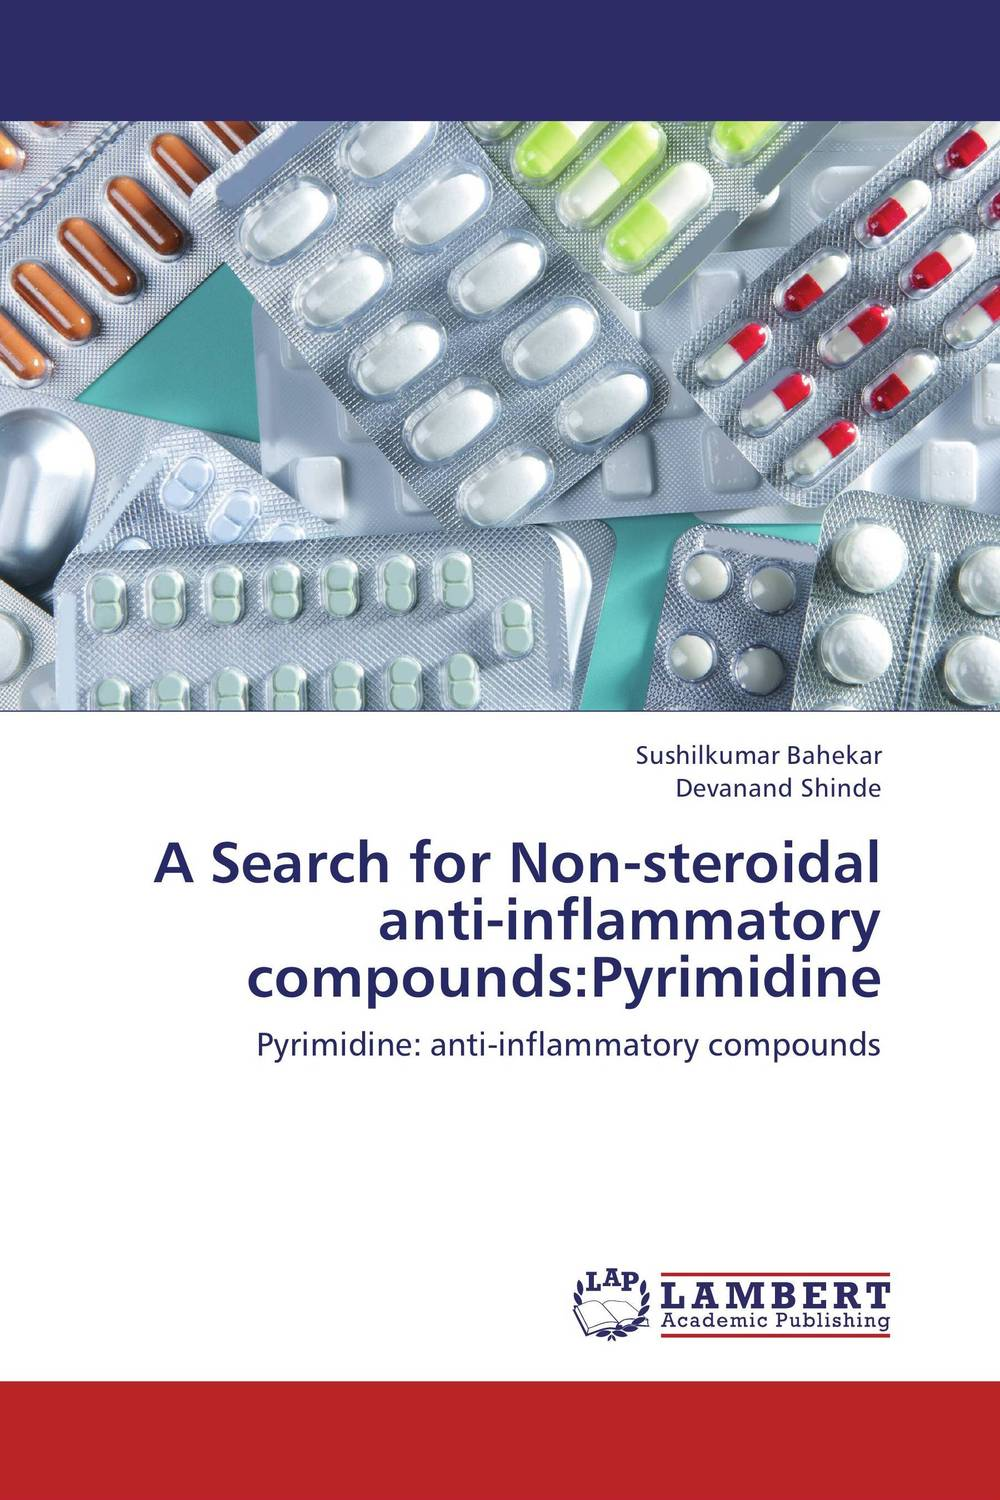 A Search for Non-steroidal anti-inflammatory compounds:Pyrimidine a search for nonsteroidal anti inflammatory compounds pyridine